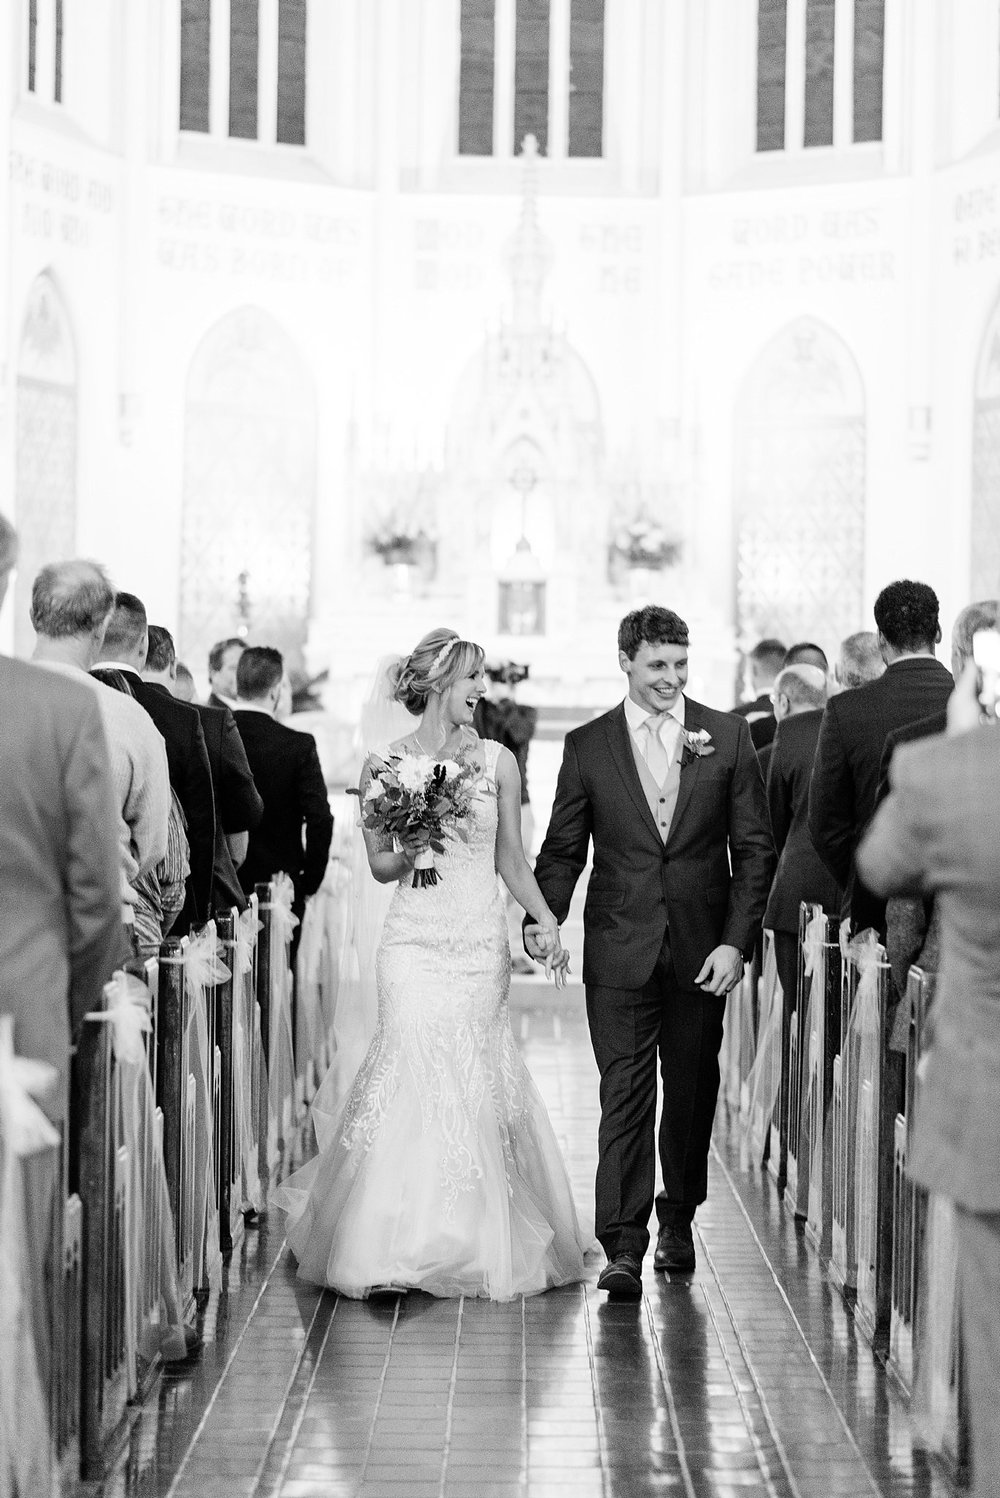 cincinnati wedding photographer175.jpg